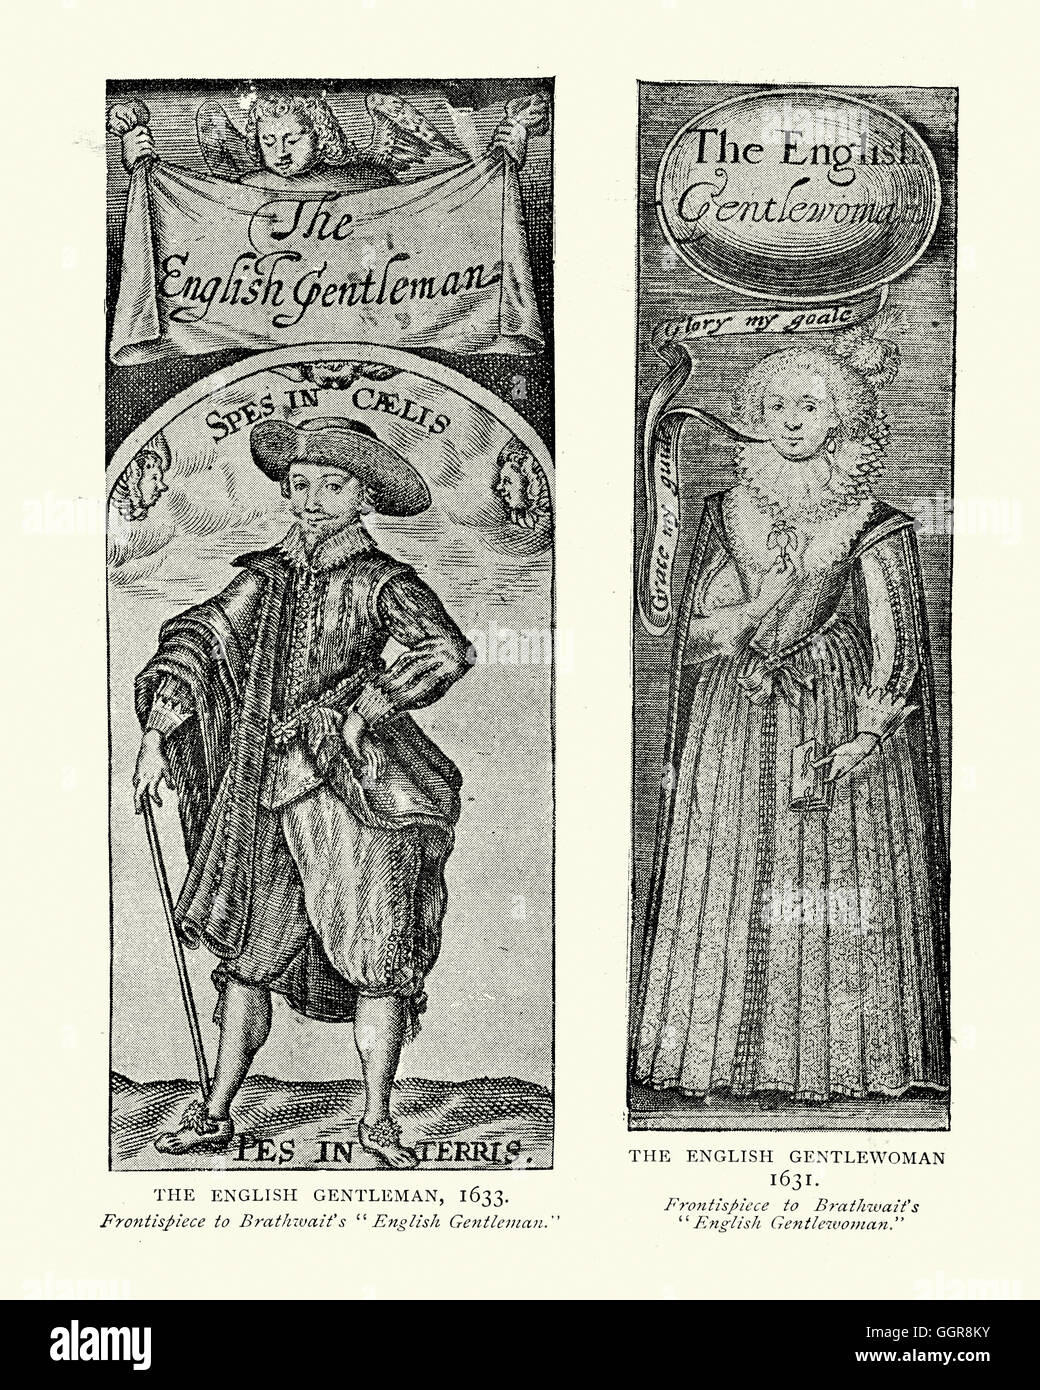 English Gentleman and Gentlewoman of the 17th Century - Stock Image